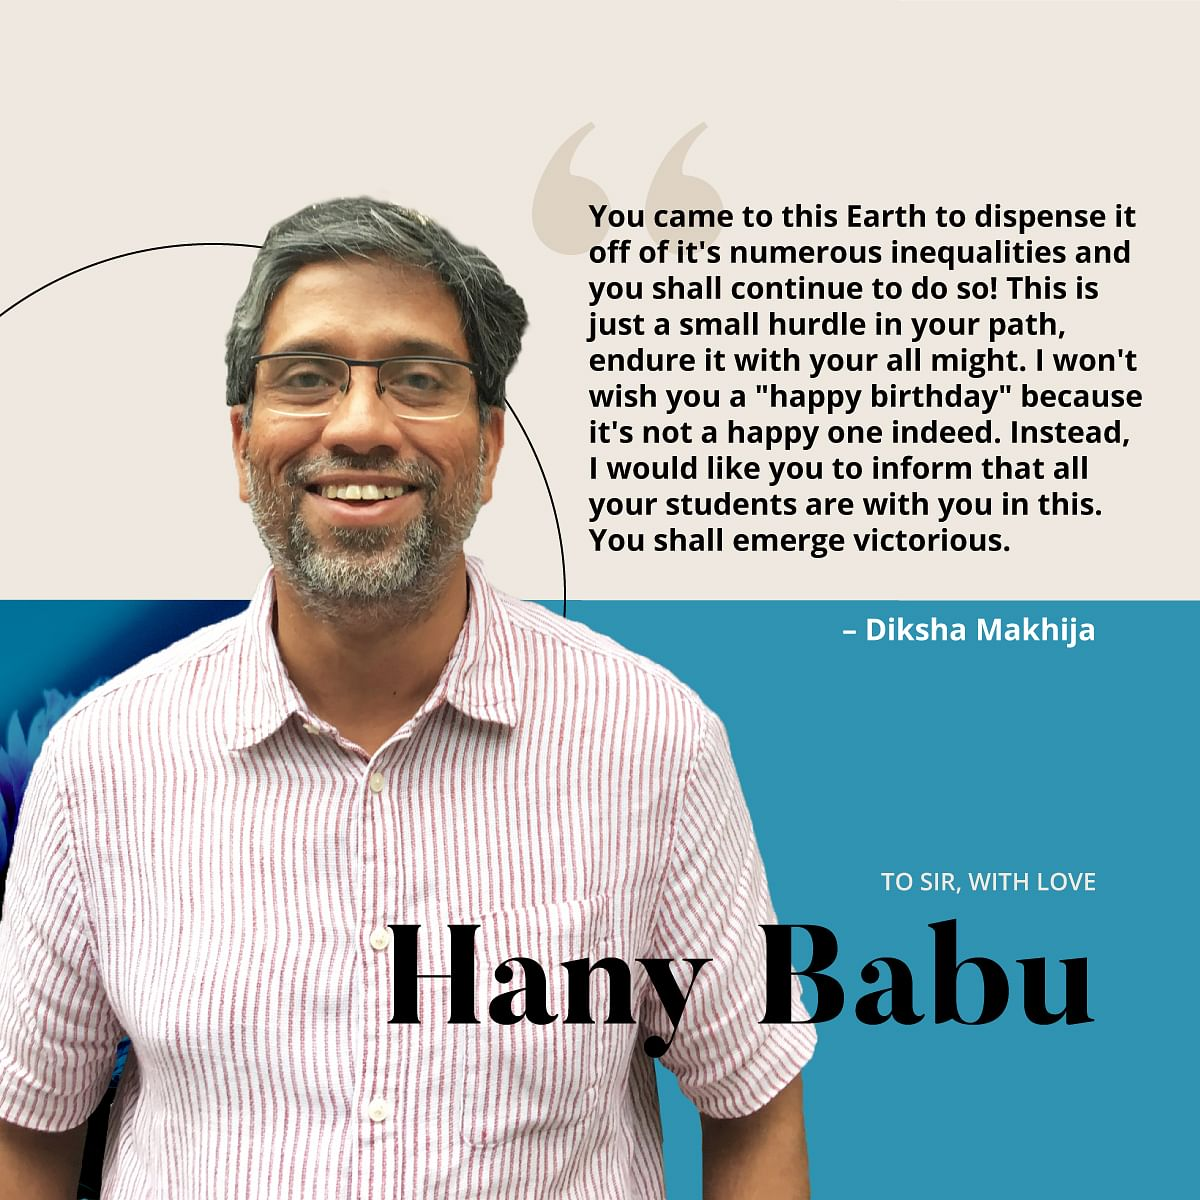 You Are Our Hero: Students Wish Jailed DU Prof Hany Babu on B'day